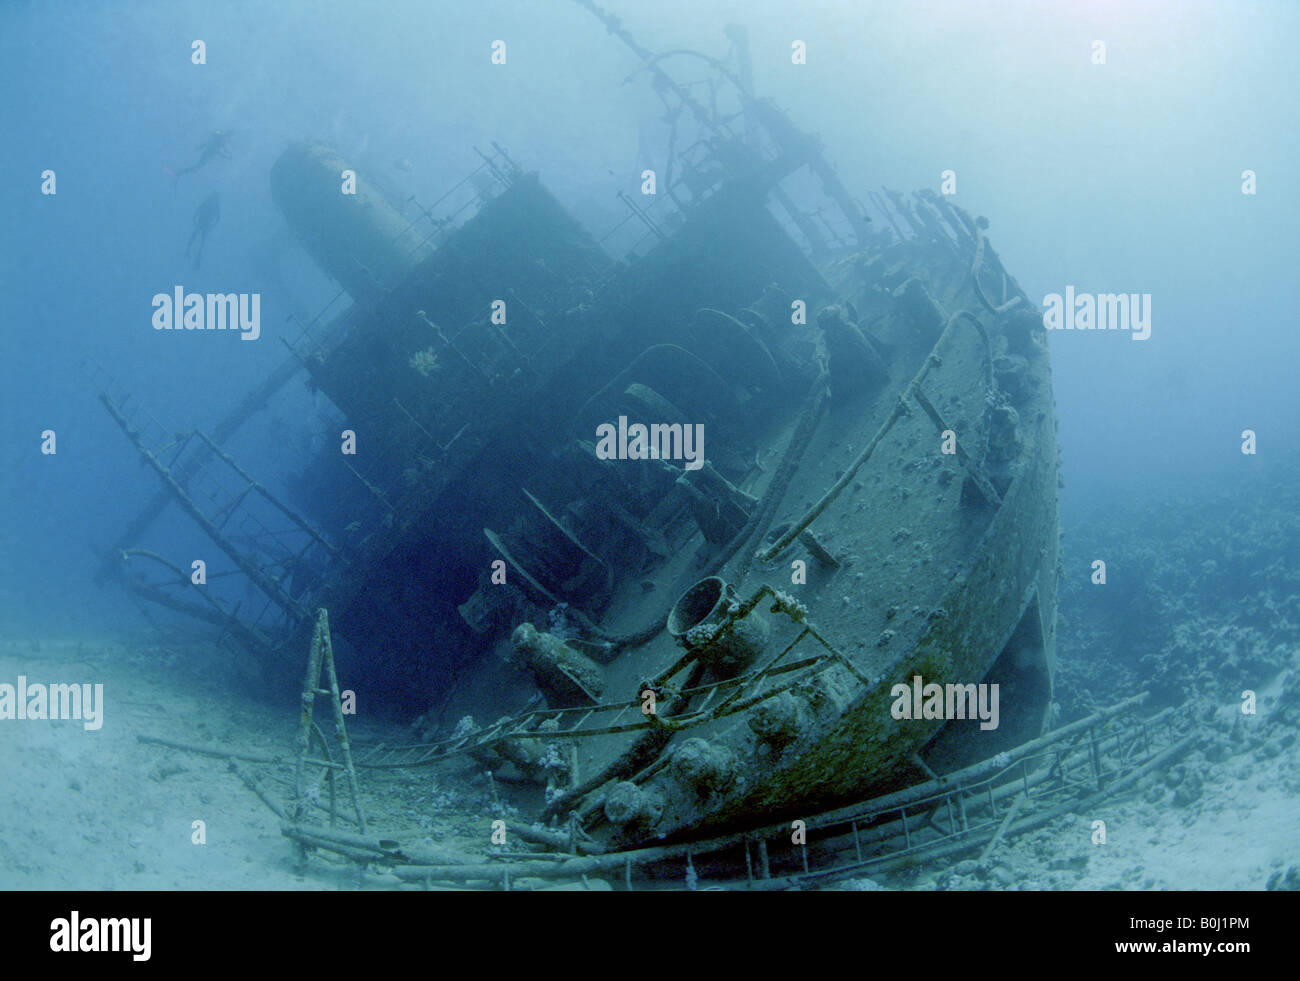 Stern view of the Giannis D shipwreck Abu Nuhas Reef Red Sea Egypt Africa Stock Photo